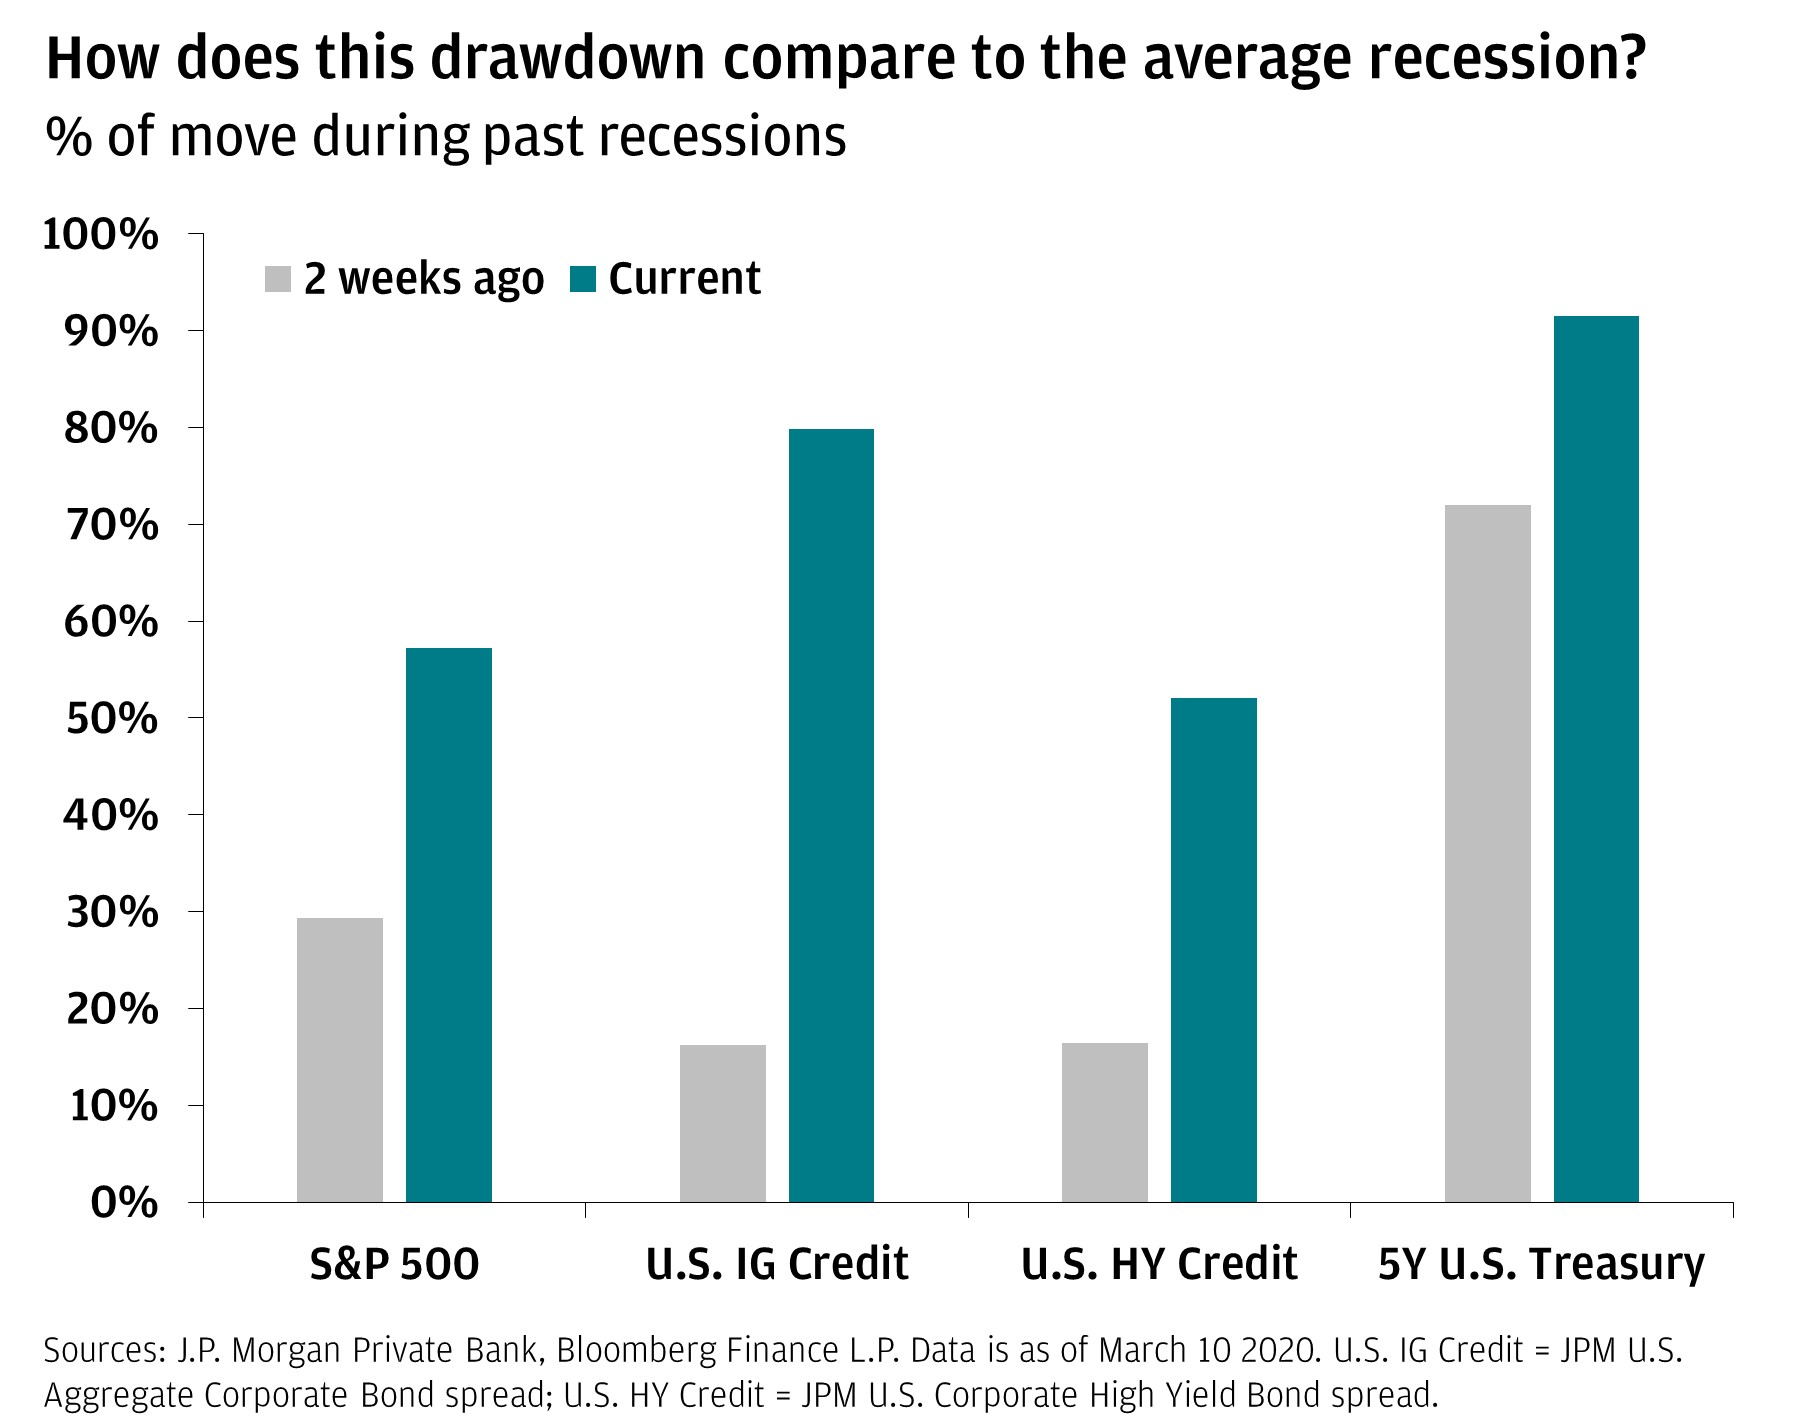 The bar graph shows the % of move during past recessions for equities, IG credit, HY credit and the 5-year U.S. Treasury. It shows the difference between March 9 and two weeks ago.